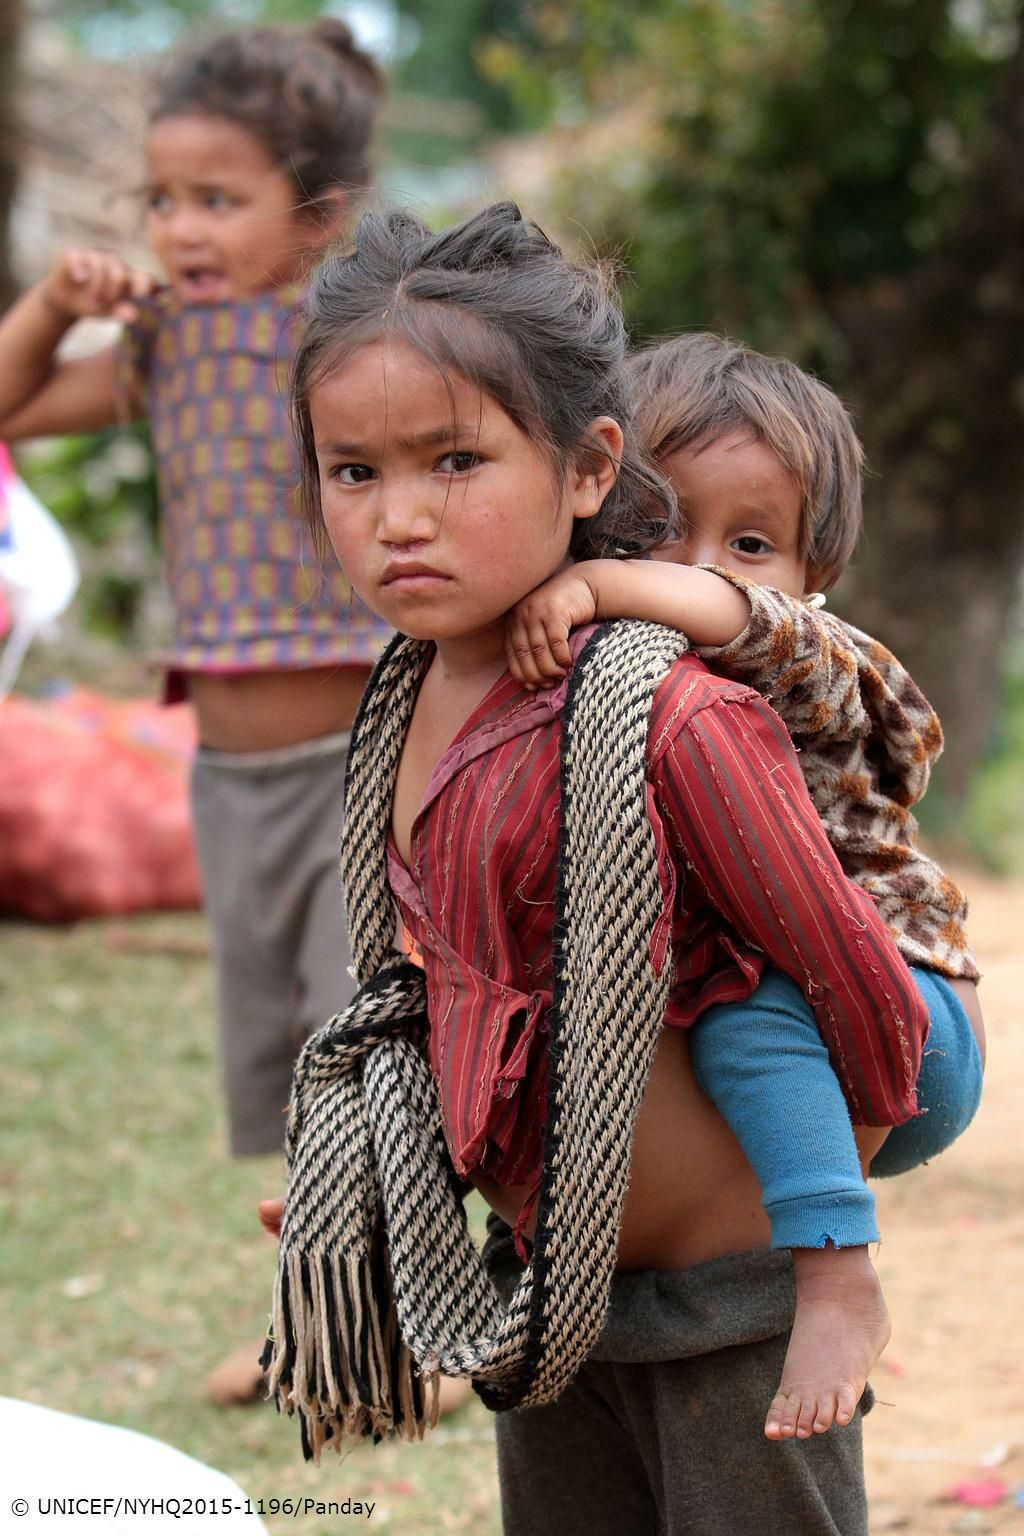 Looming crisis for children's emotional health after two major earthquakes in #Nepal http://uni.cf/1Fa9w86